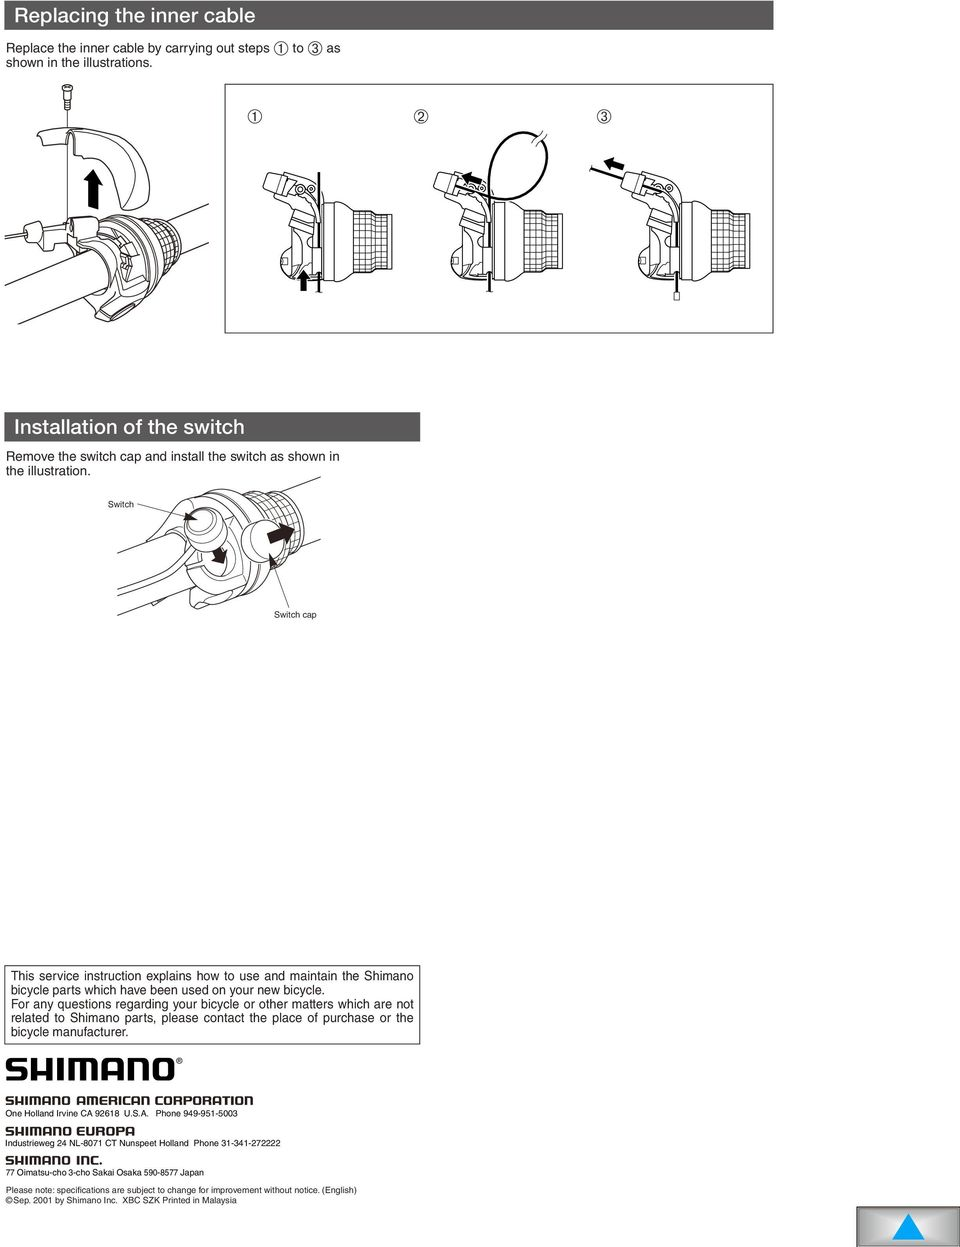 Sl Rs41 7t Rs31 Pdf Shimano Di2 Wiring Diagram Switch Cap This Service Instruction Explains How To Use And Maintain The Bicycle Parts